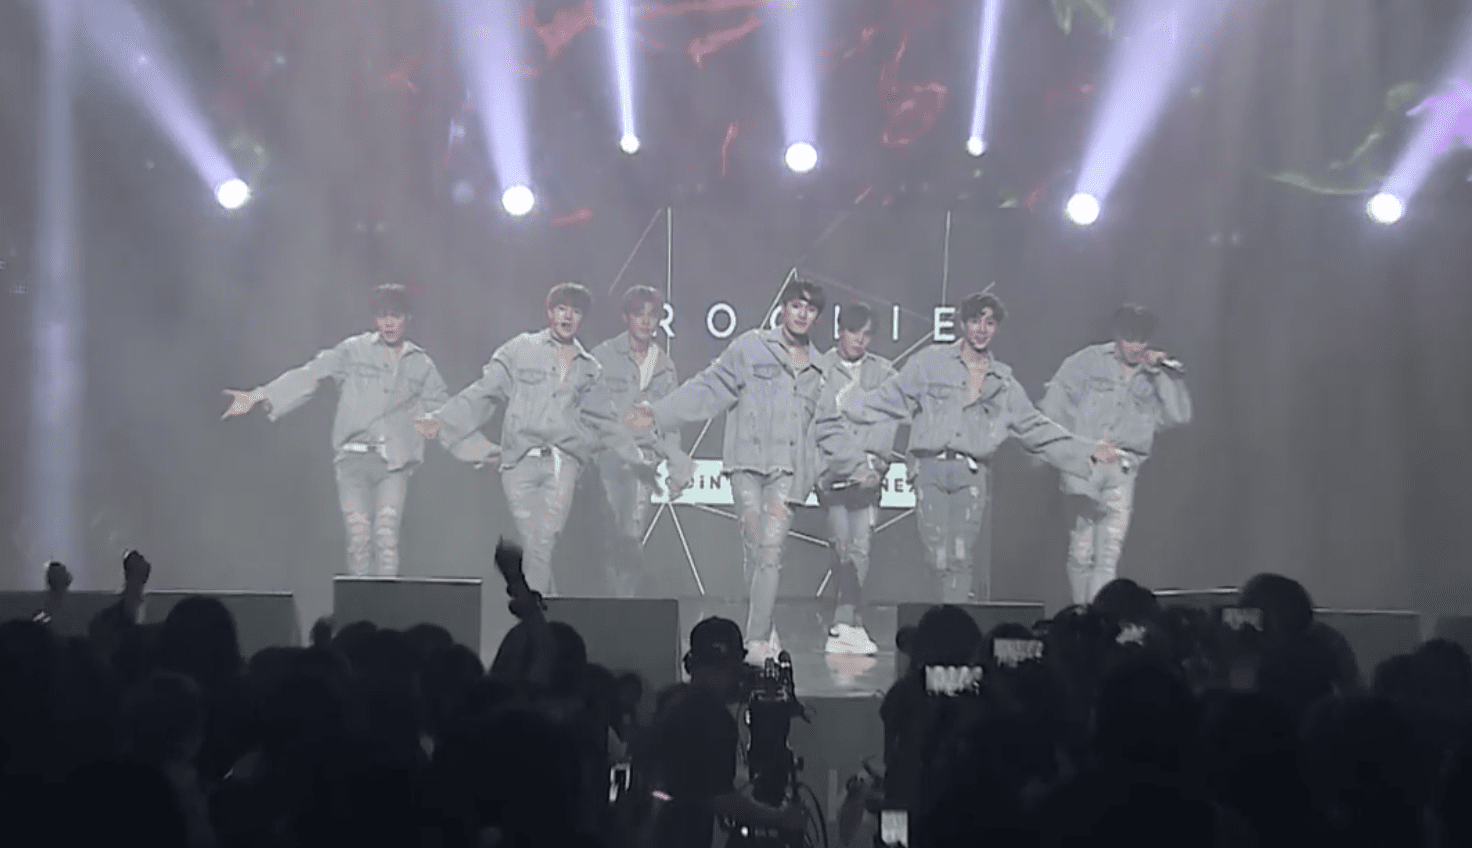 Watch: 24K Flawlessly Finishes Only You Performance Despite Technical Difficulties